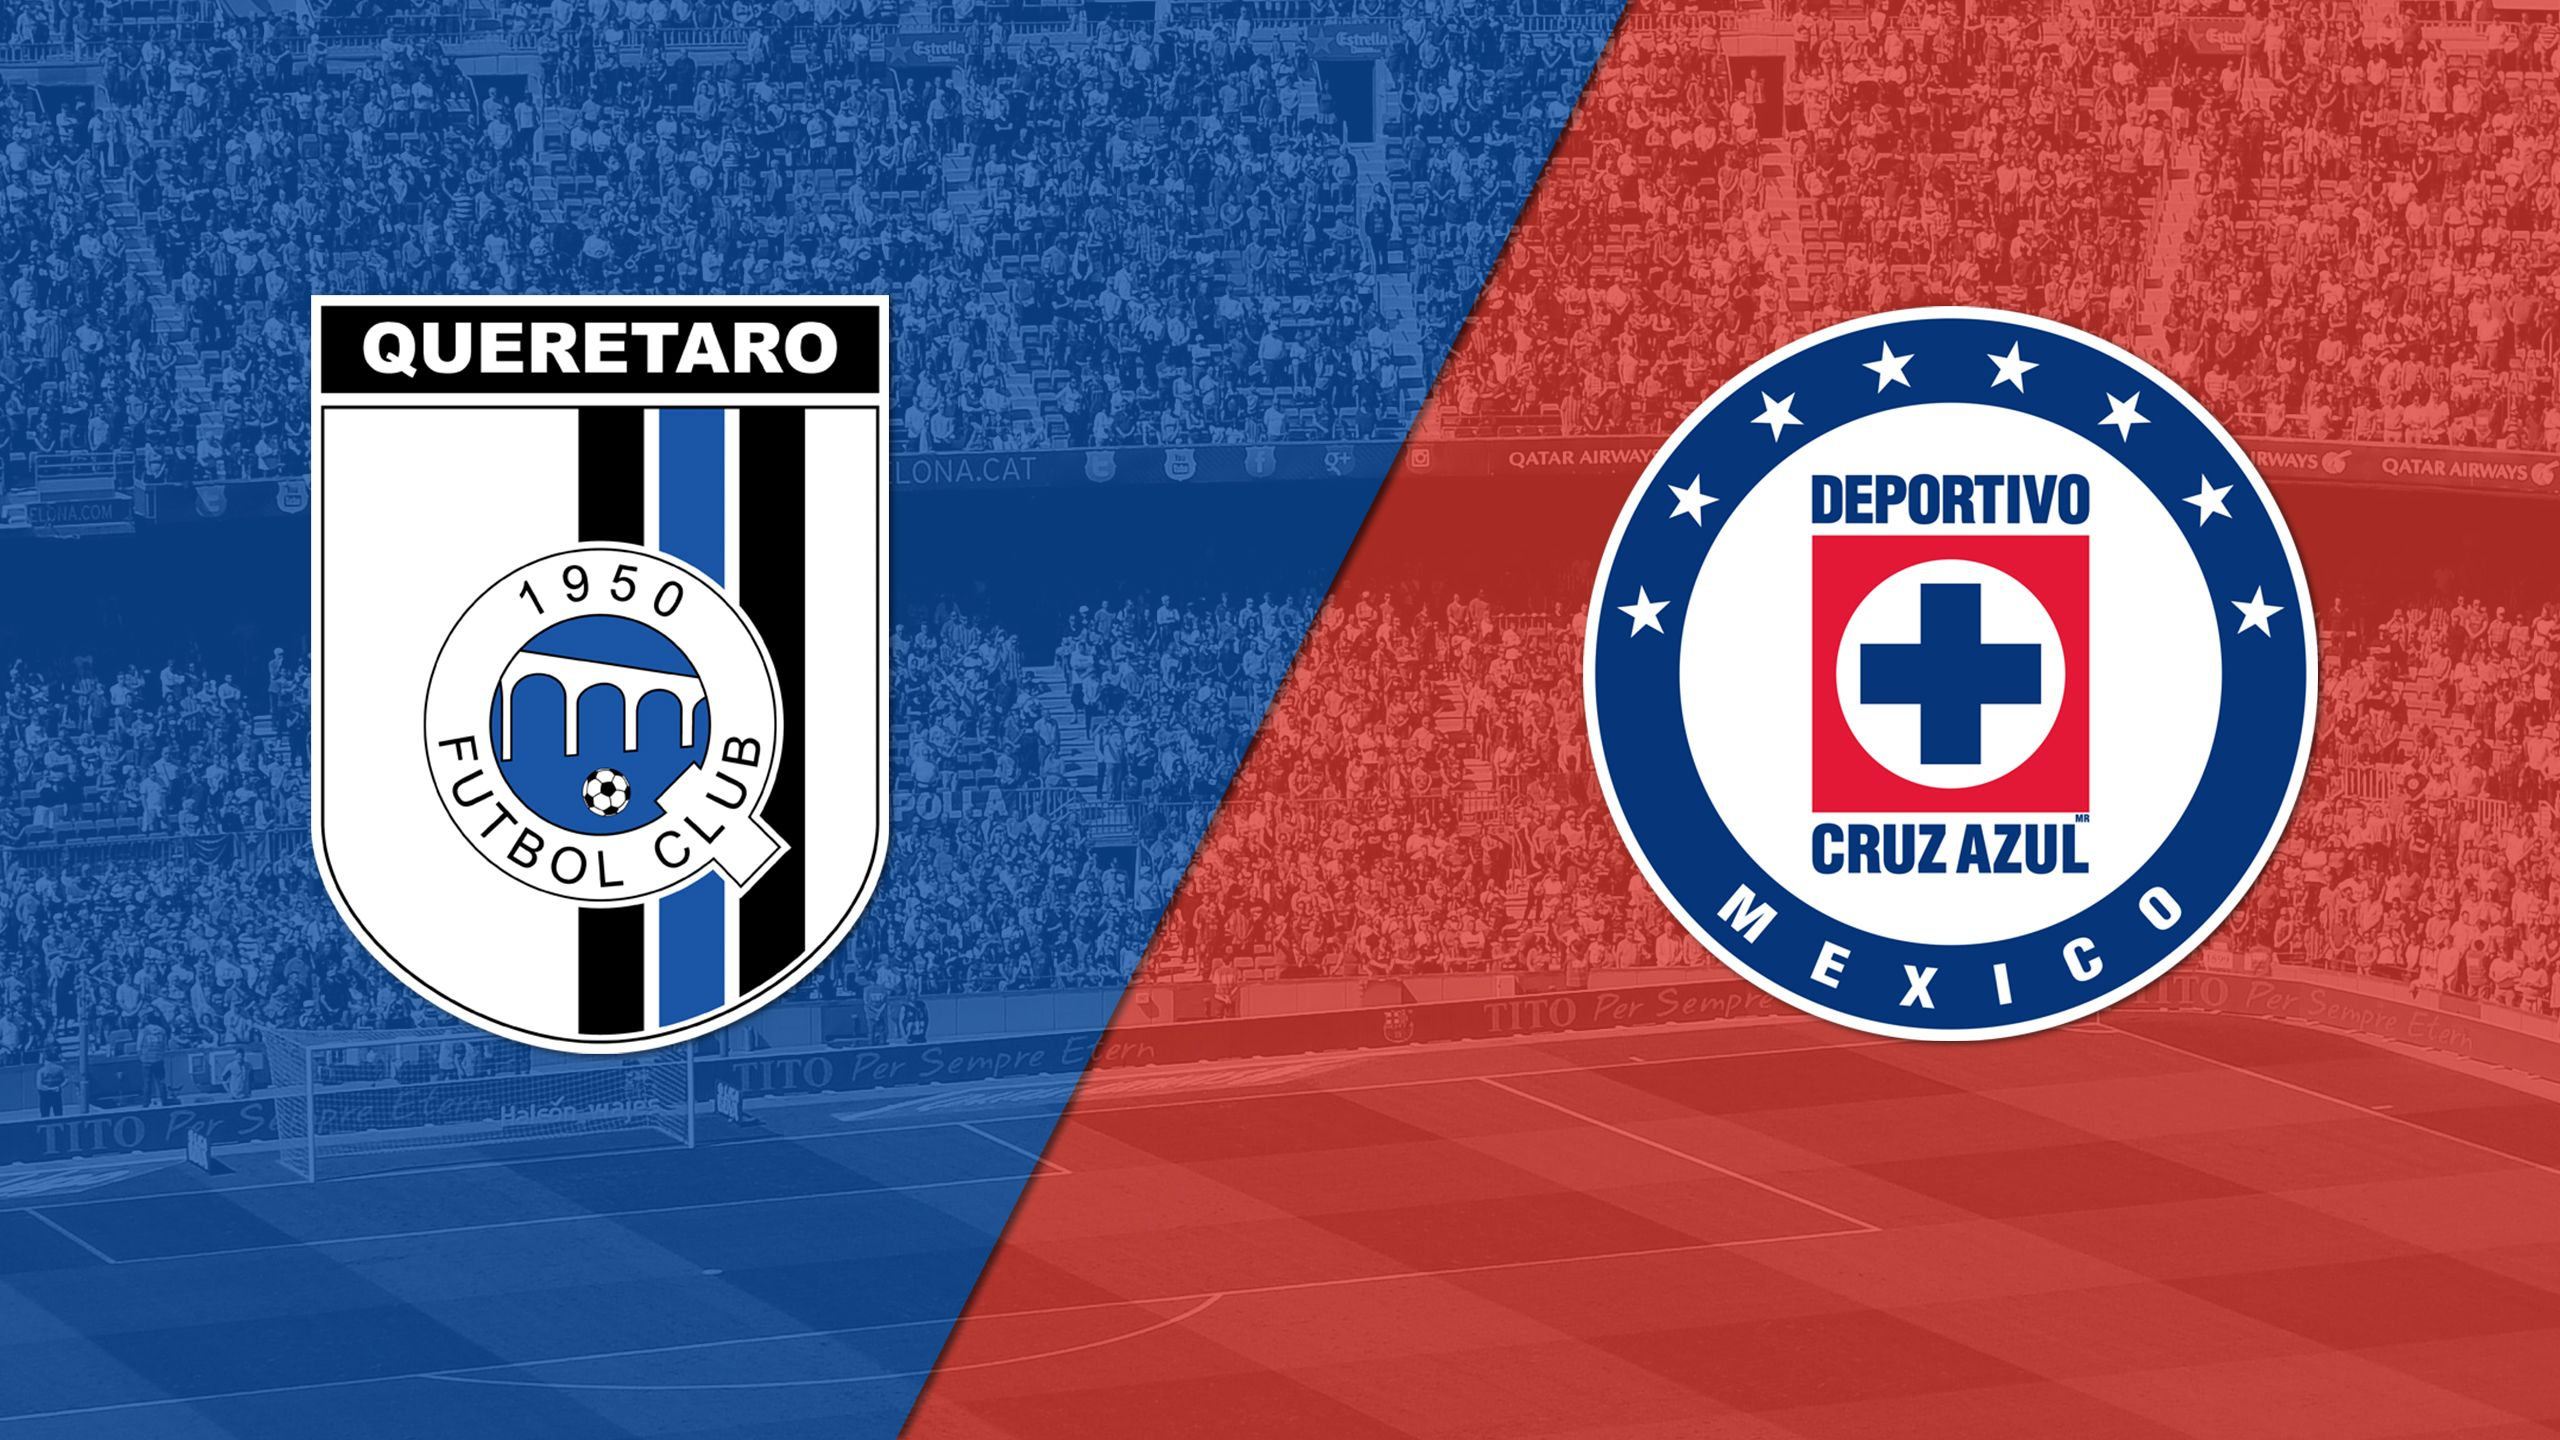 In Spanish - Queretaro vs. Cruz Azul (Matchday #10) (Liga MX)